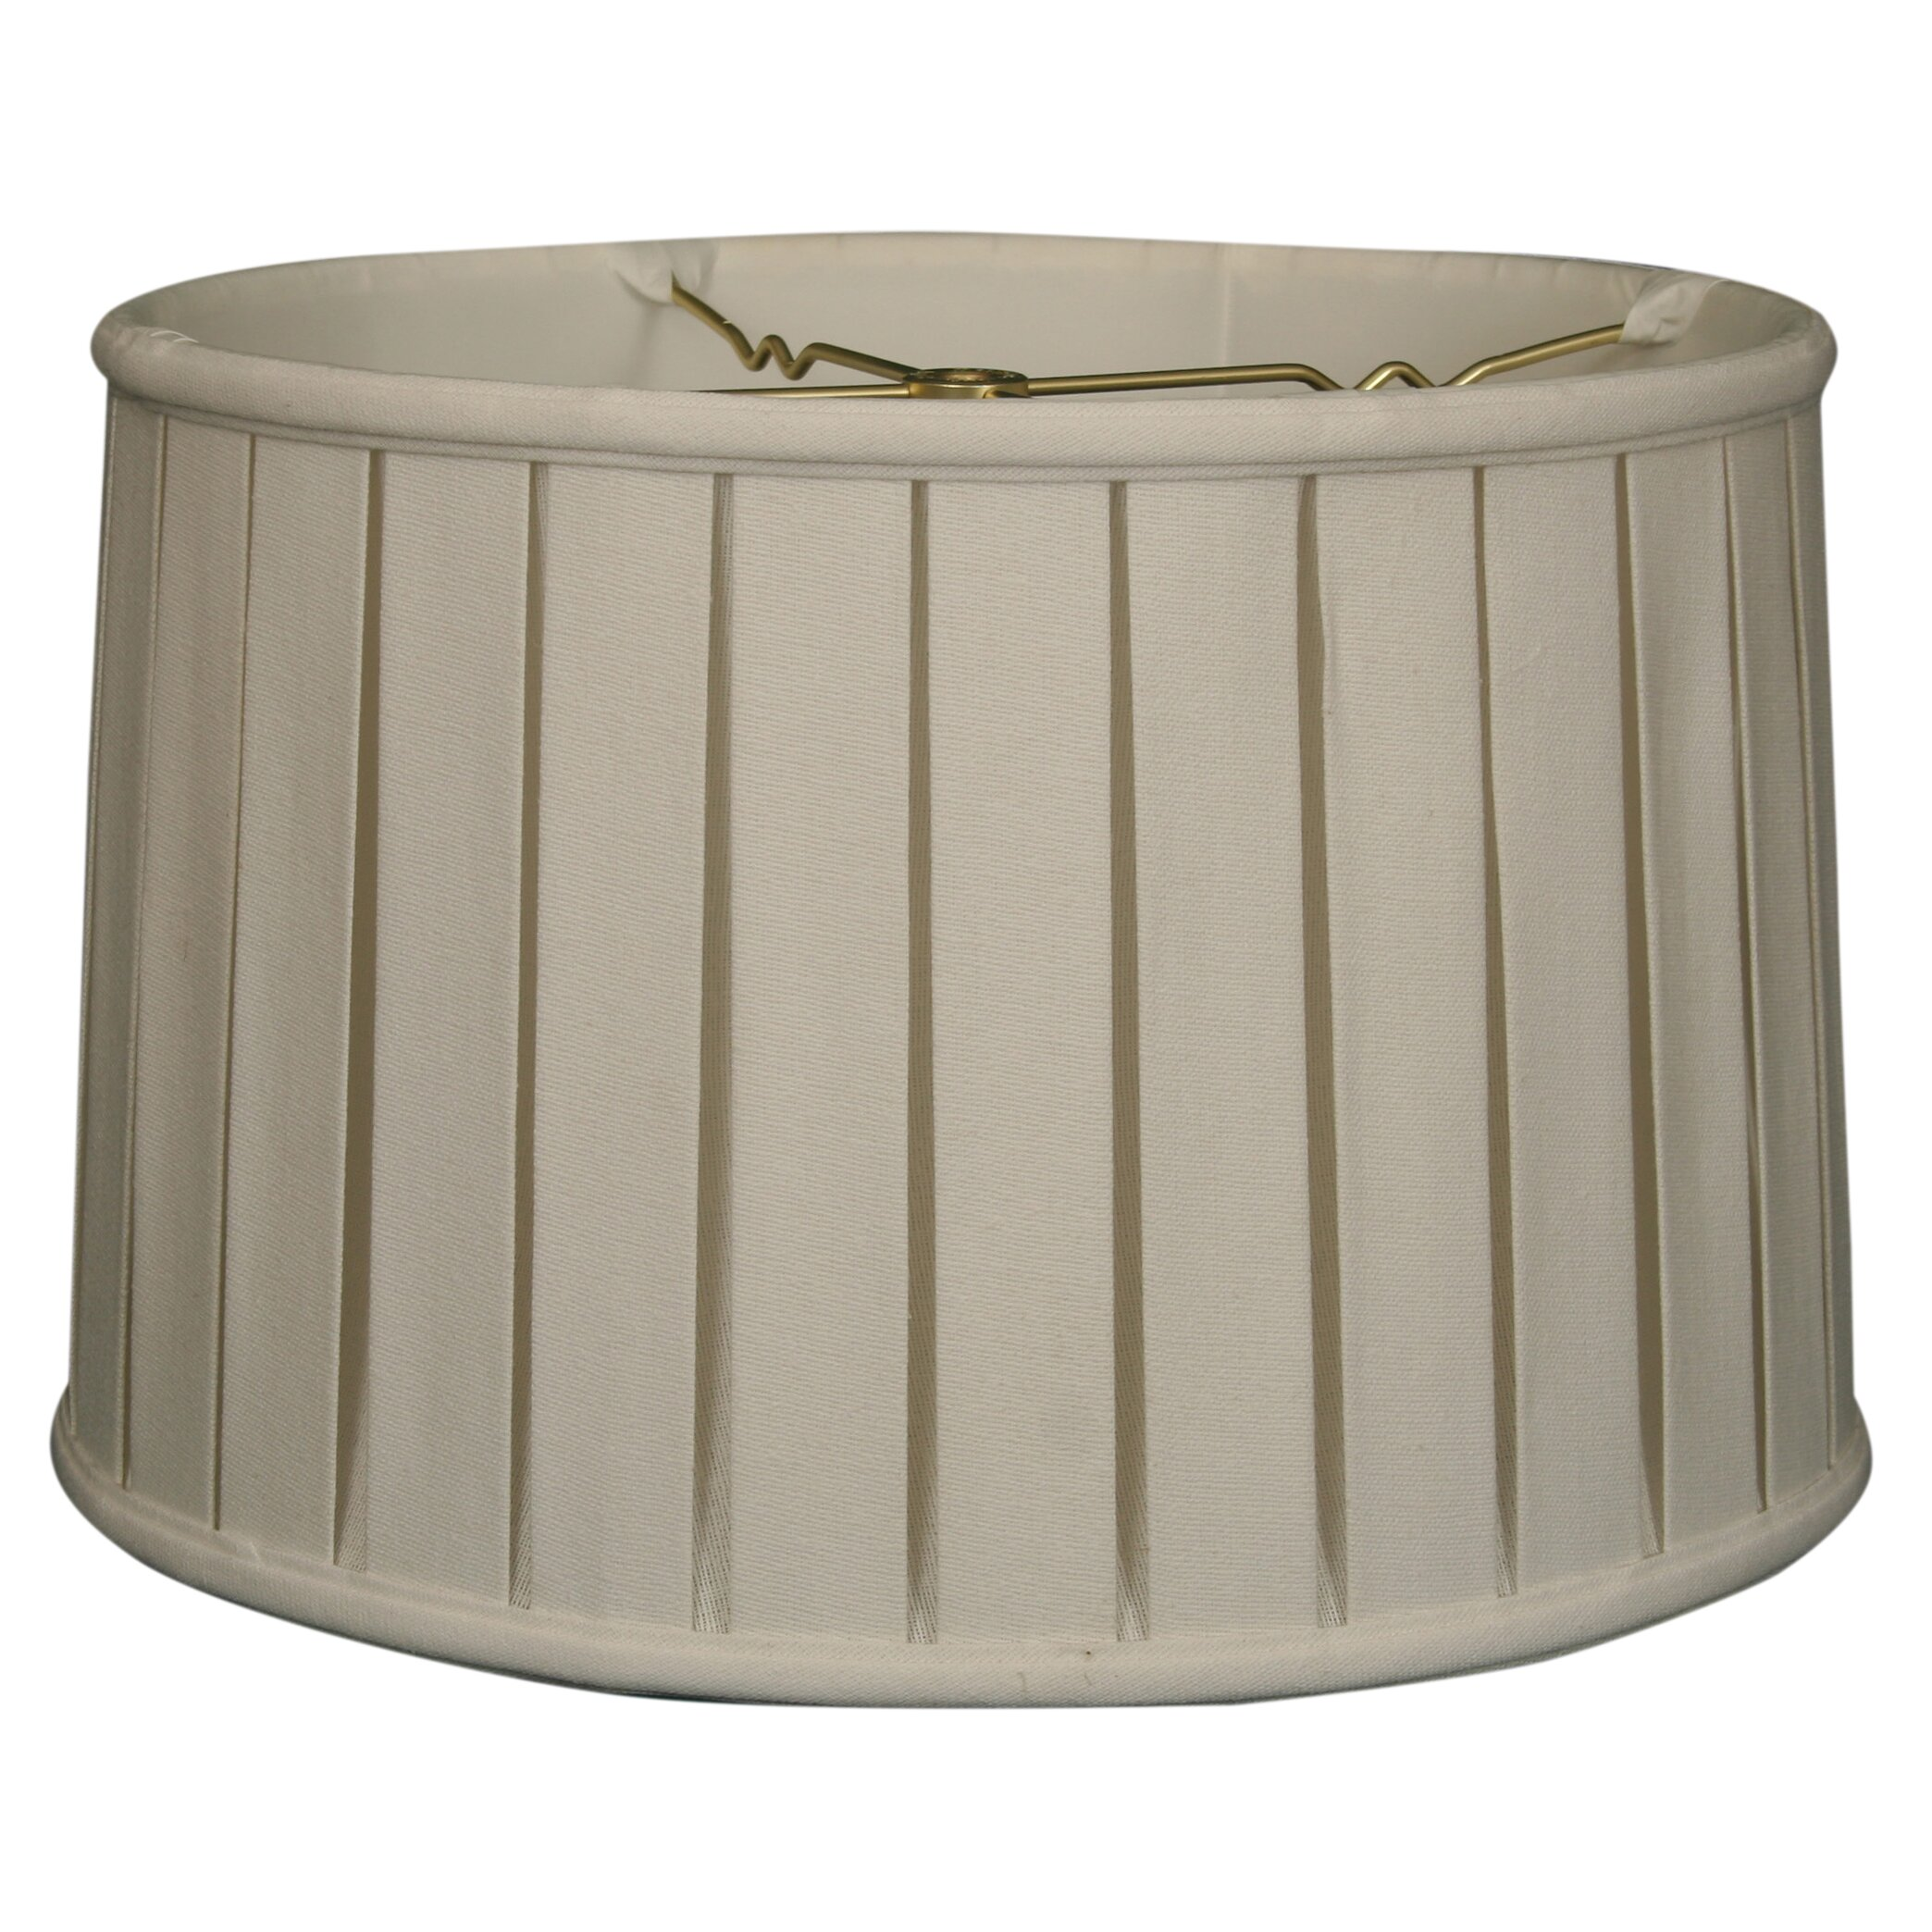 18 Tall Drum Lamp Shade Bing Images